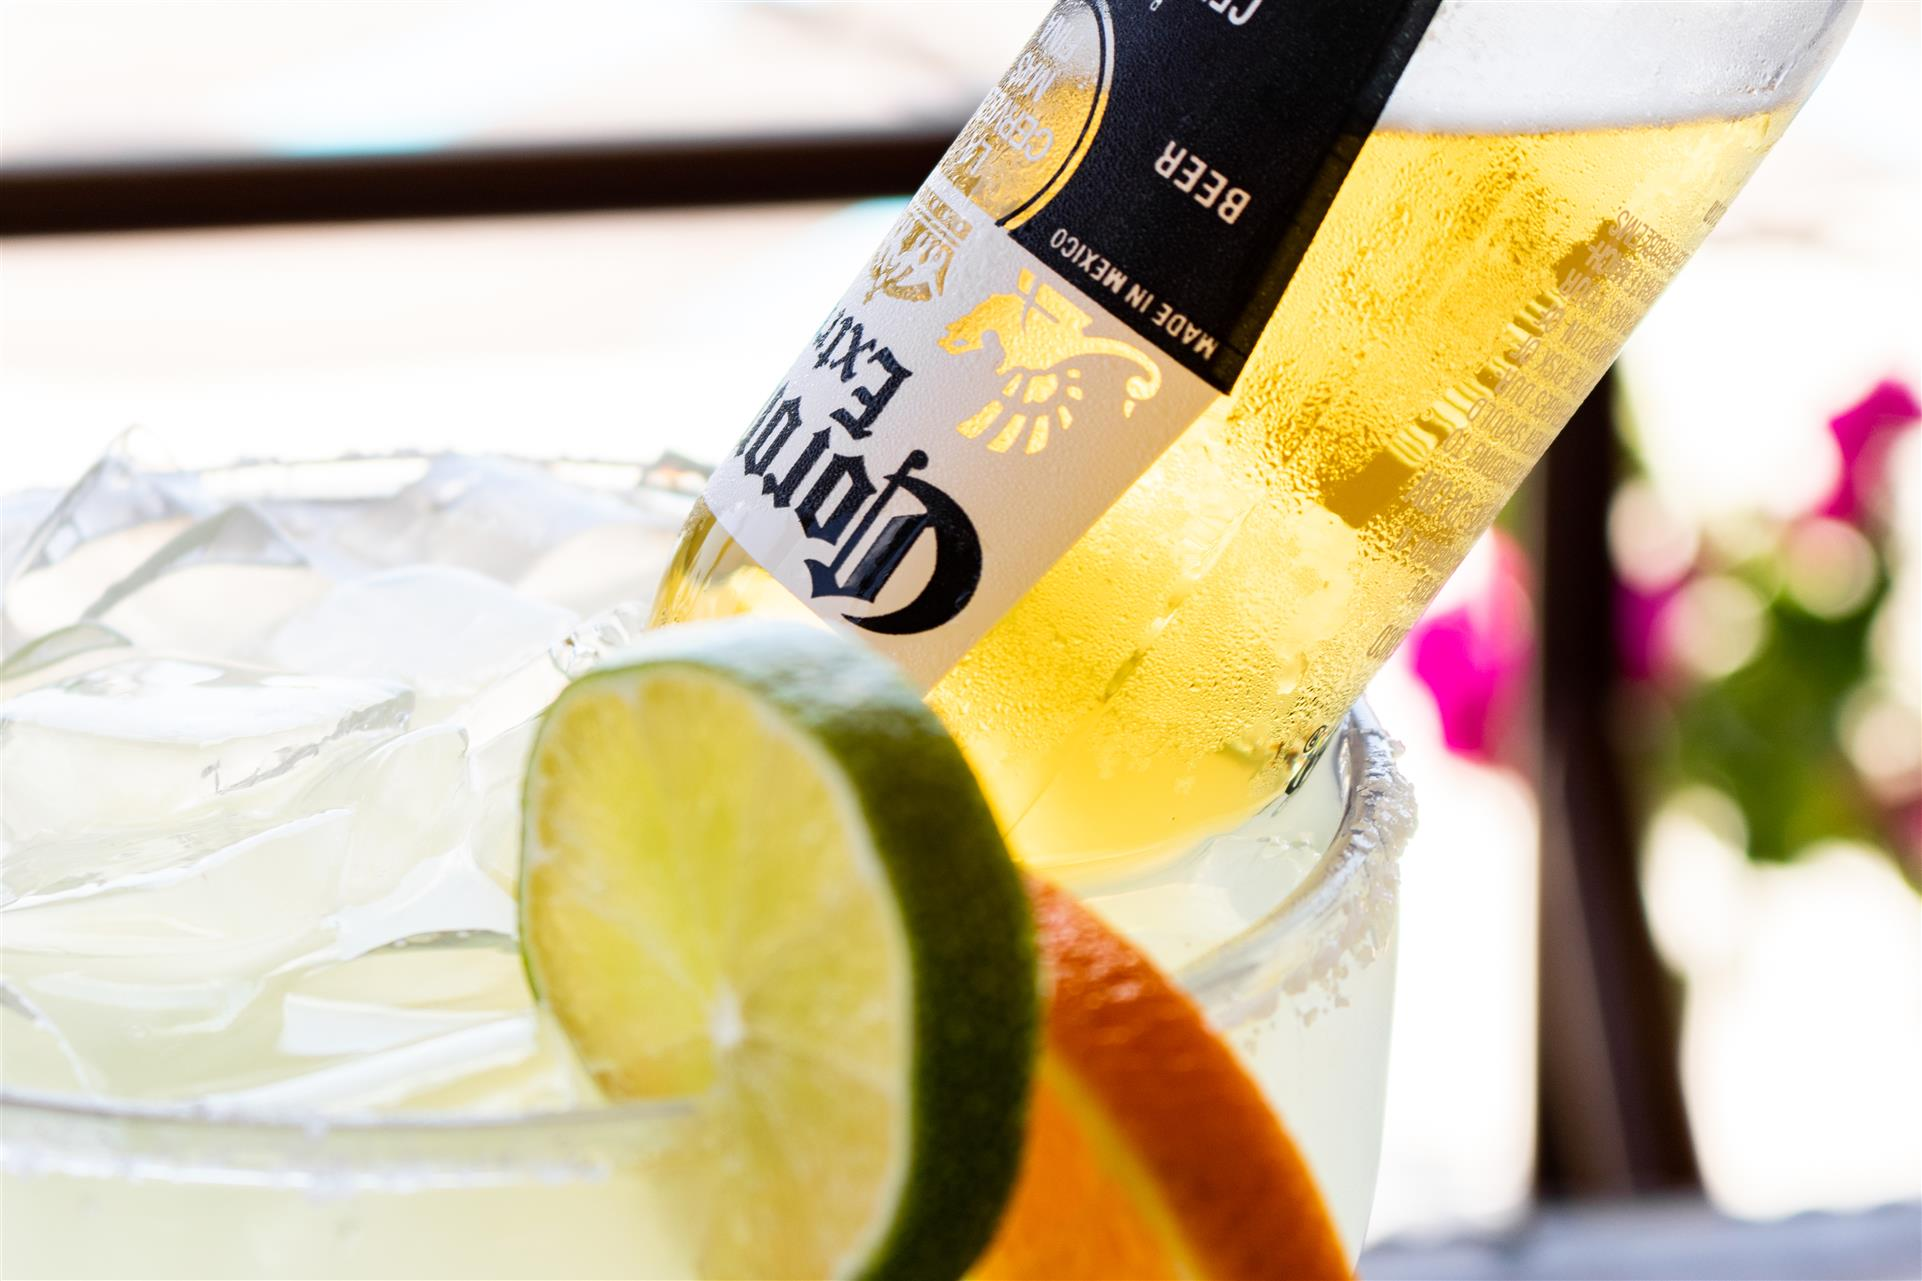 cocktail with an upside down bottle of corona, lime and orange wedges on the side